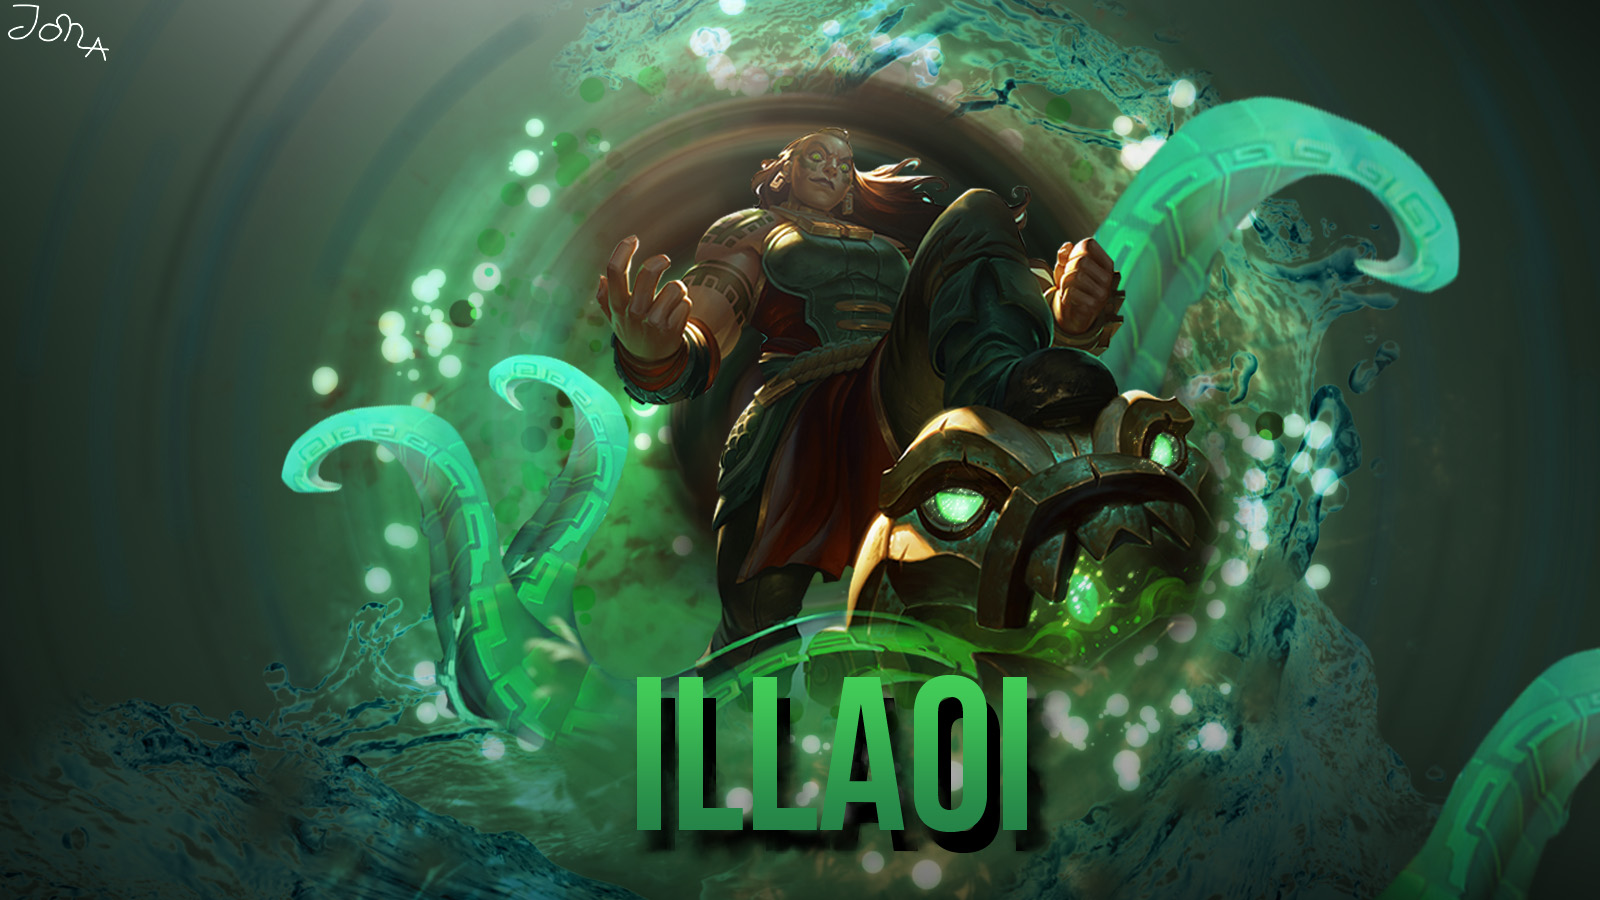 illaoi___wallpaper_by_senpaijohnny-d9igfid